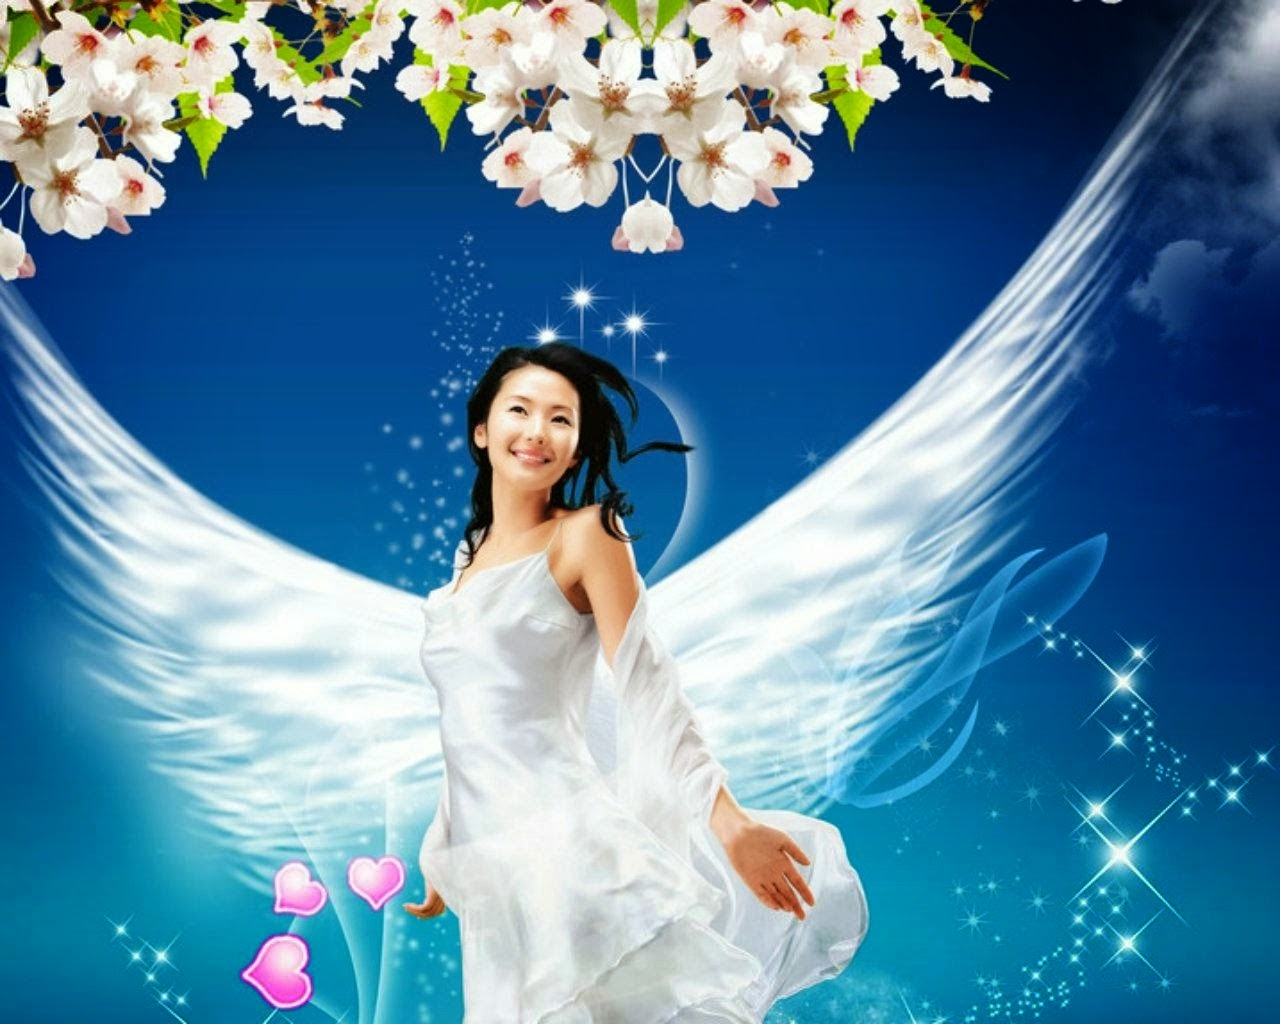 love angels wallpapers Download WhatsApp Girls Number 1280x1024